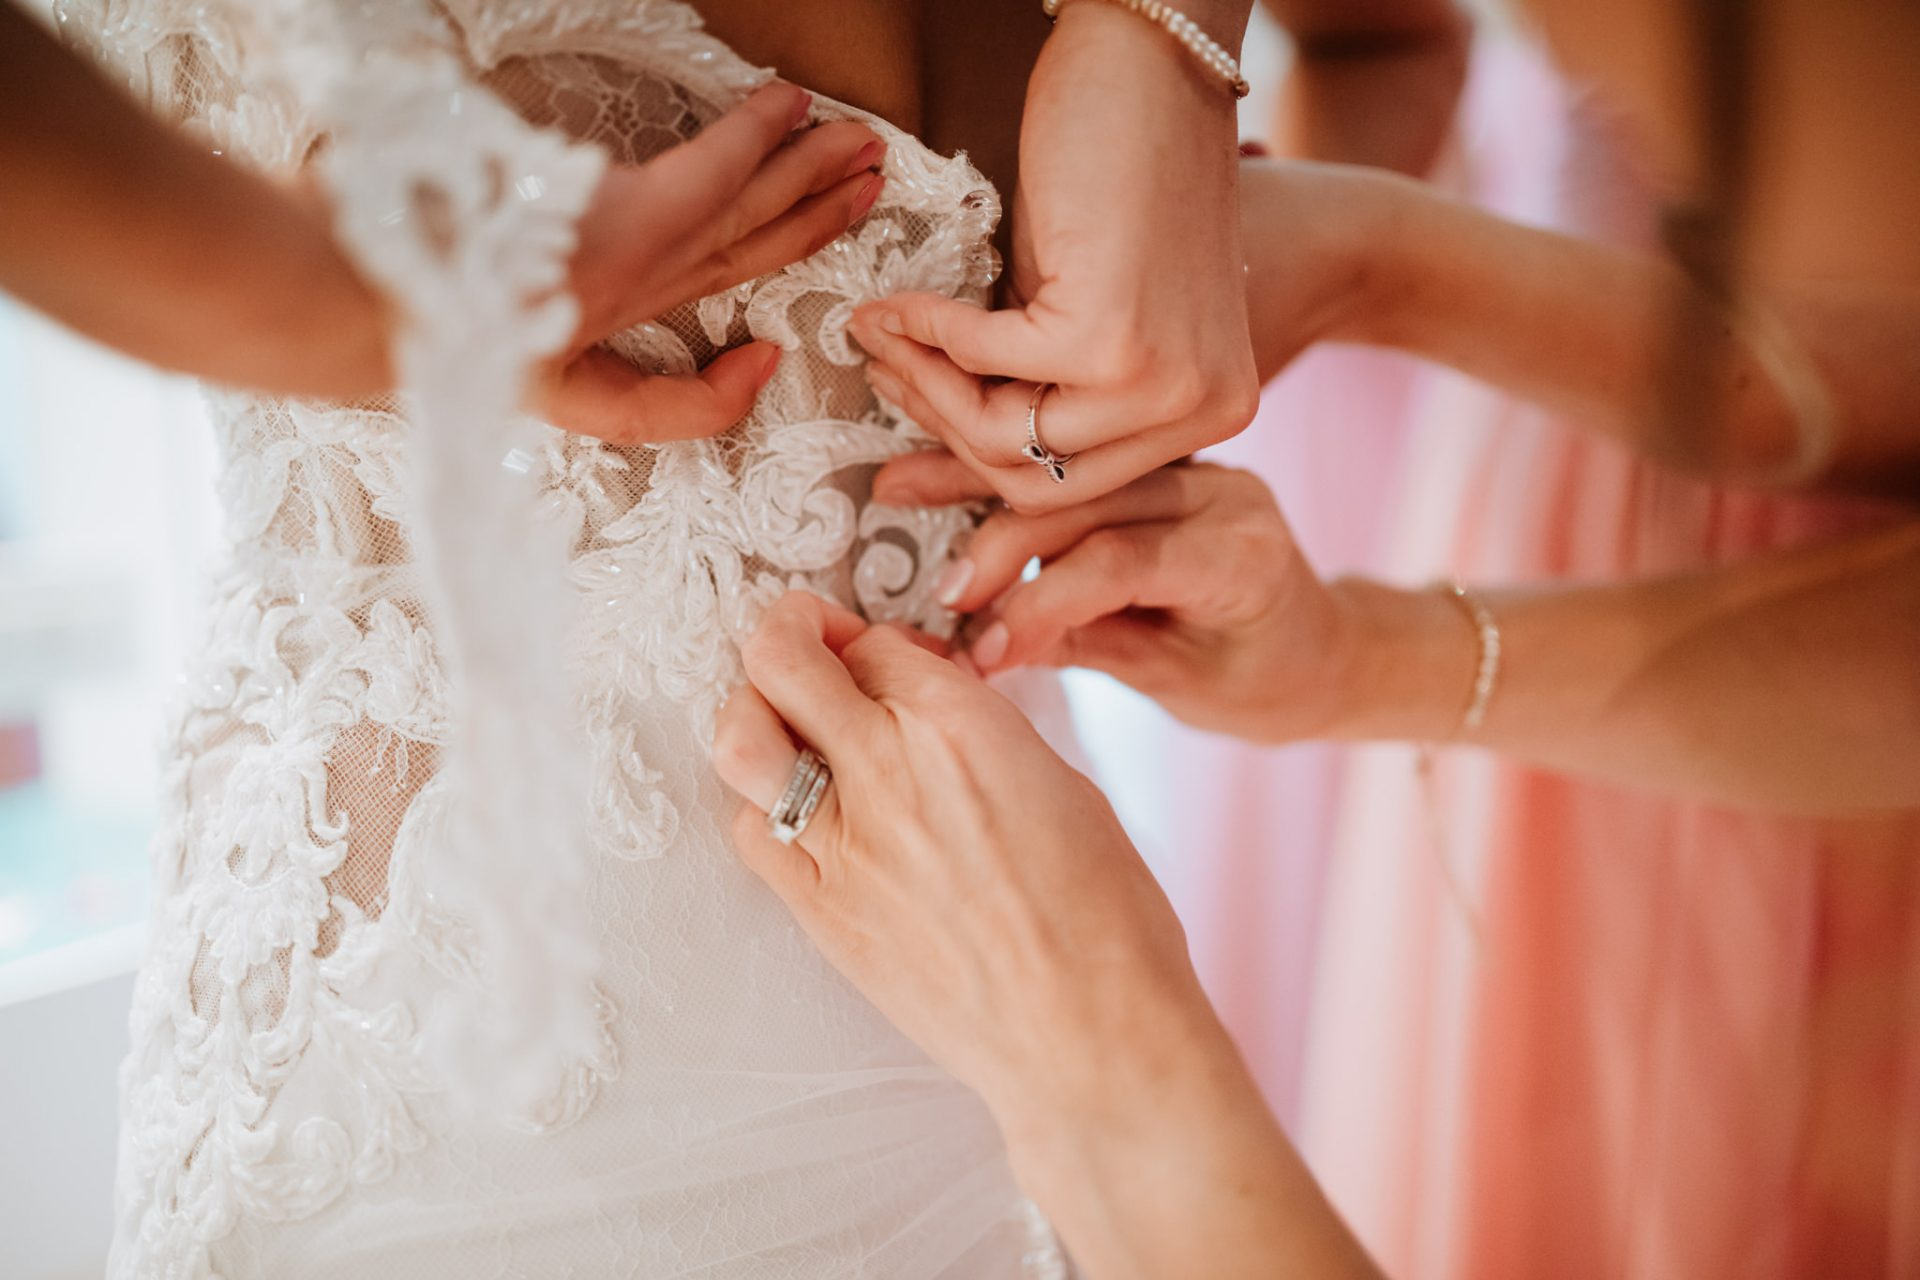 close up of the wedding dress being put on